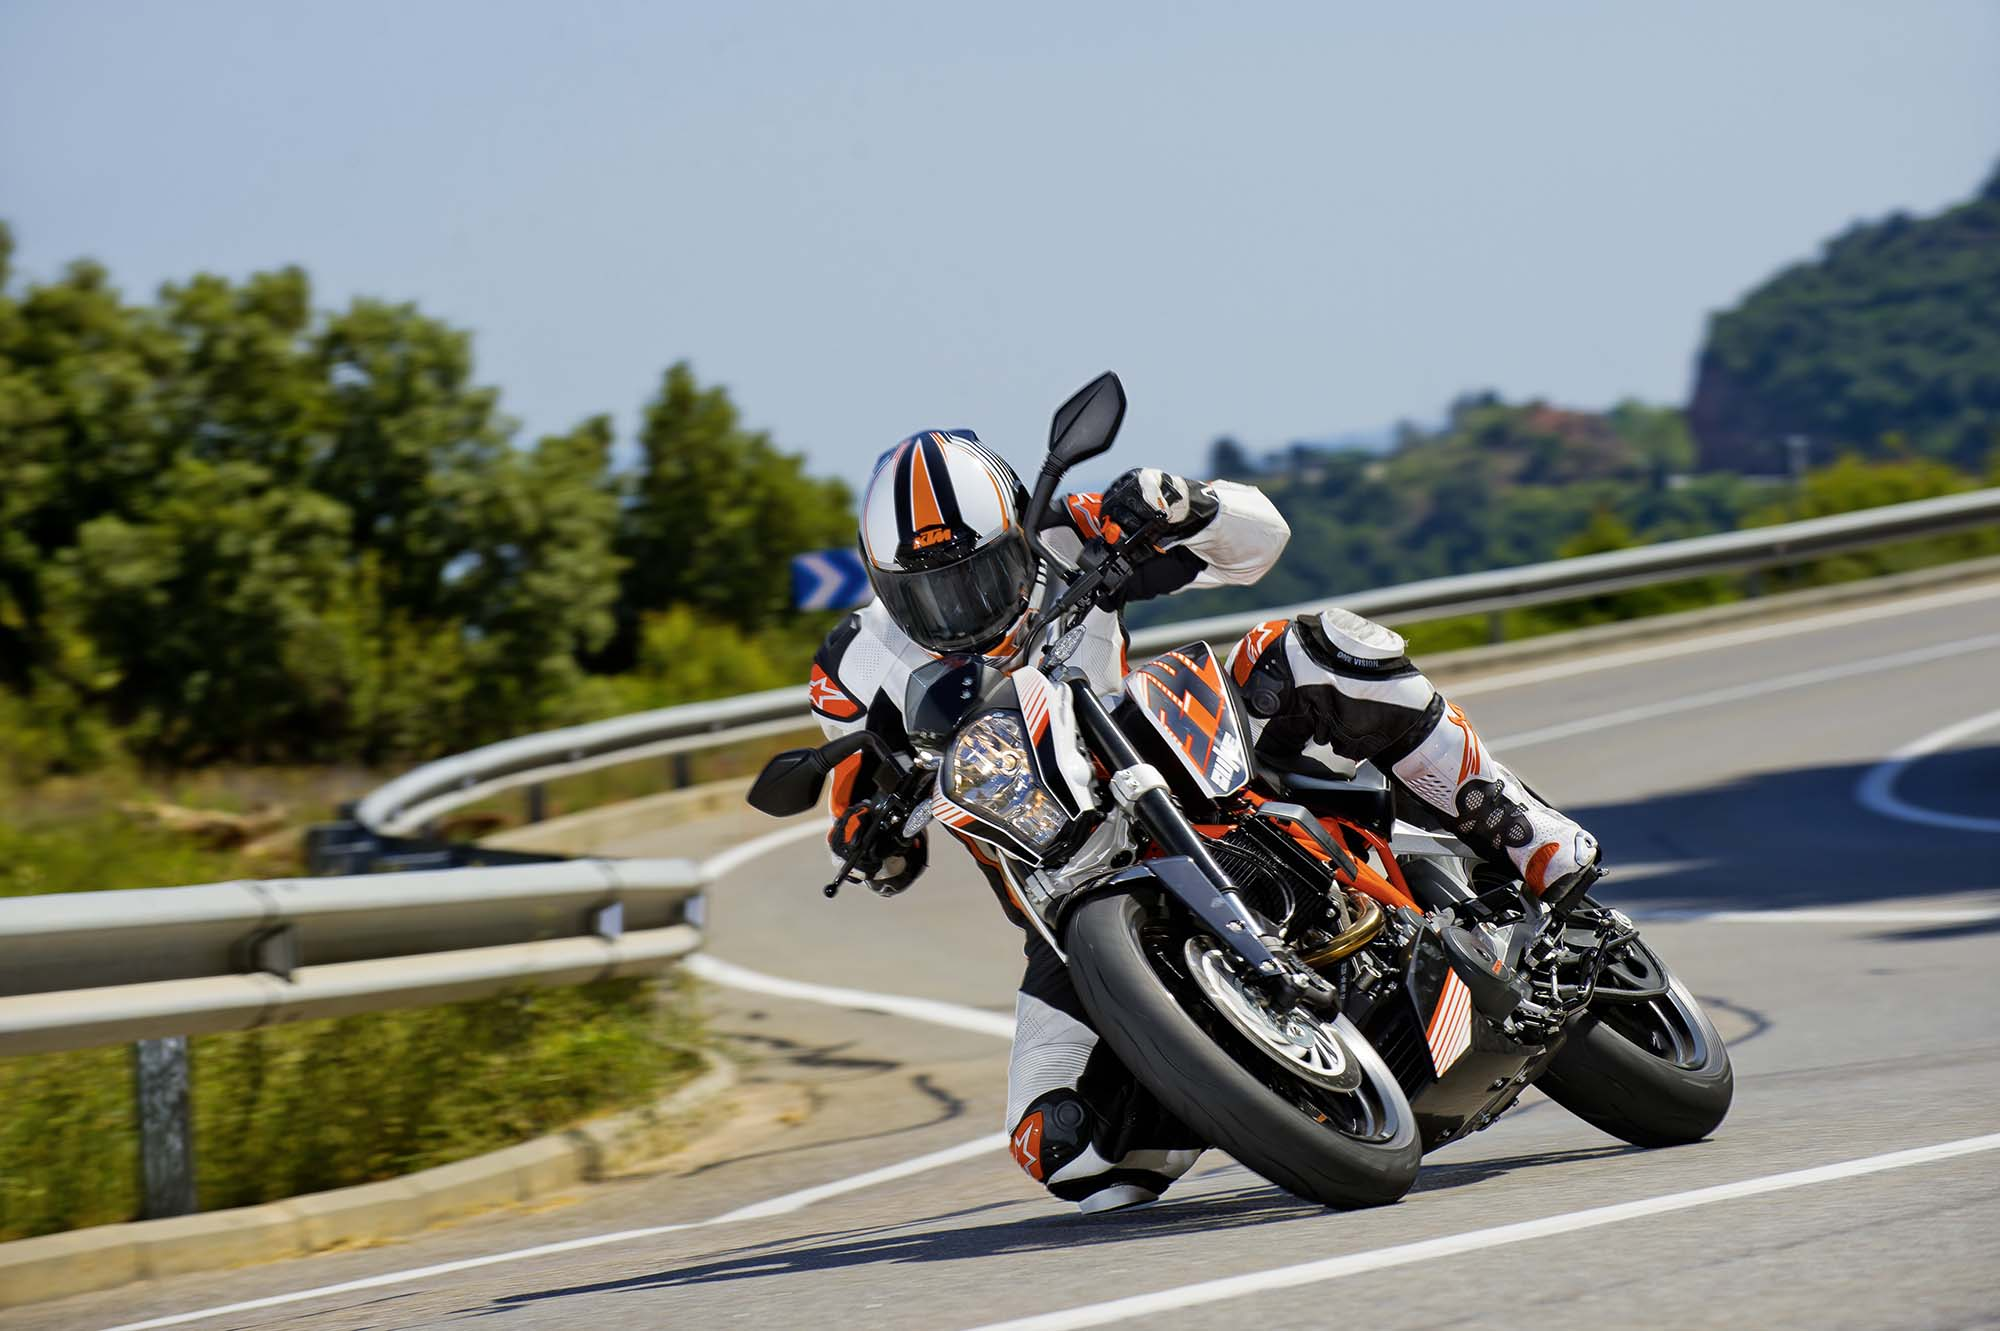 Ktm 390 Duke 2015 Model Details List Of 20 Changes